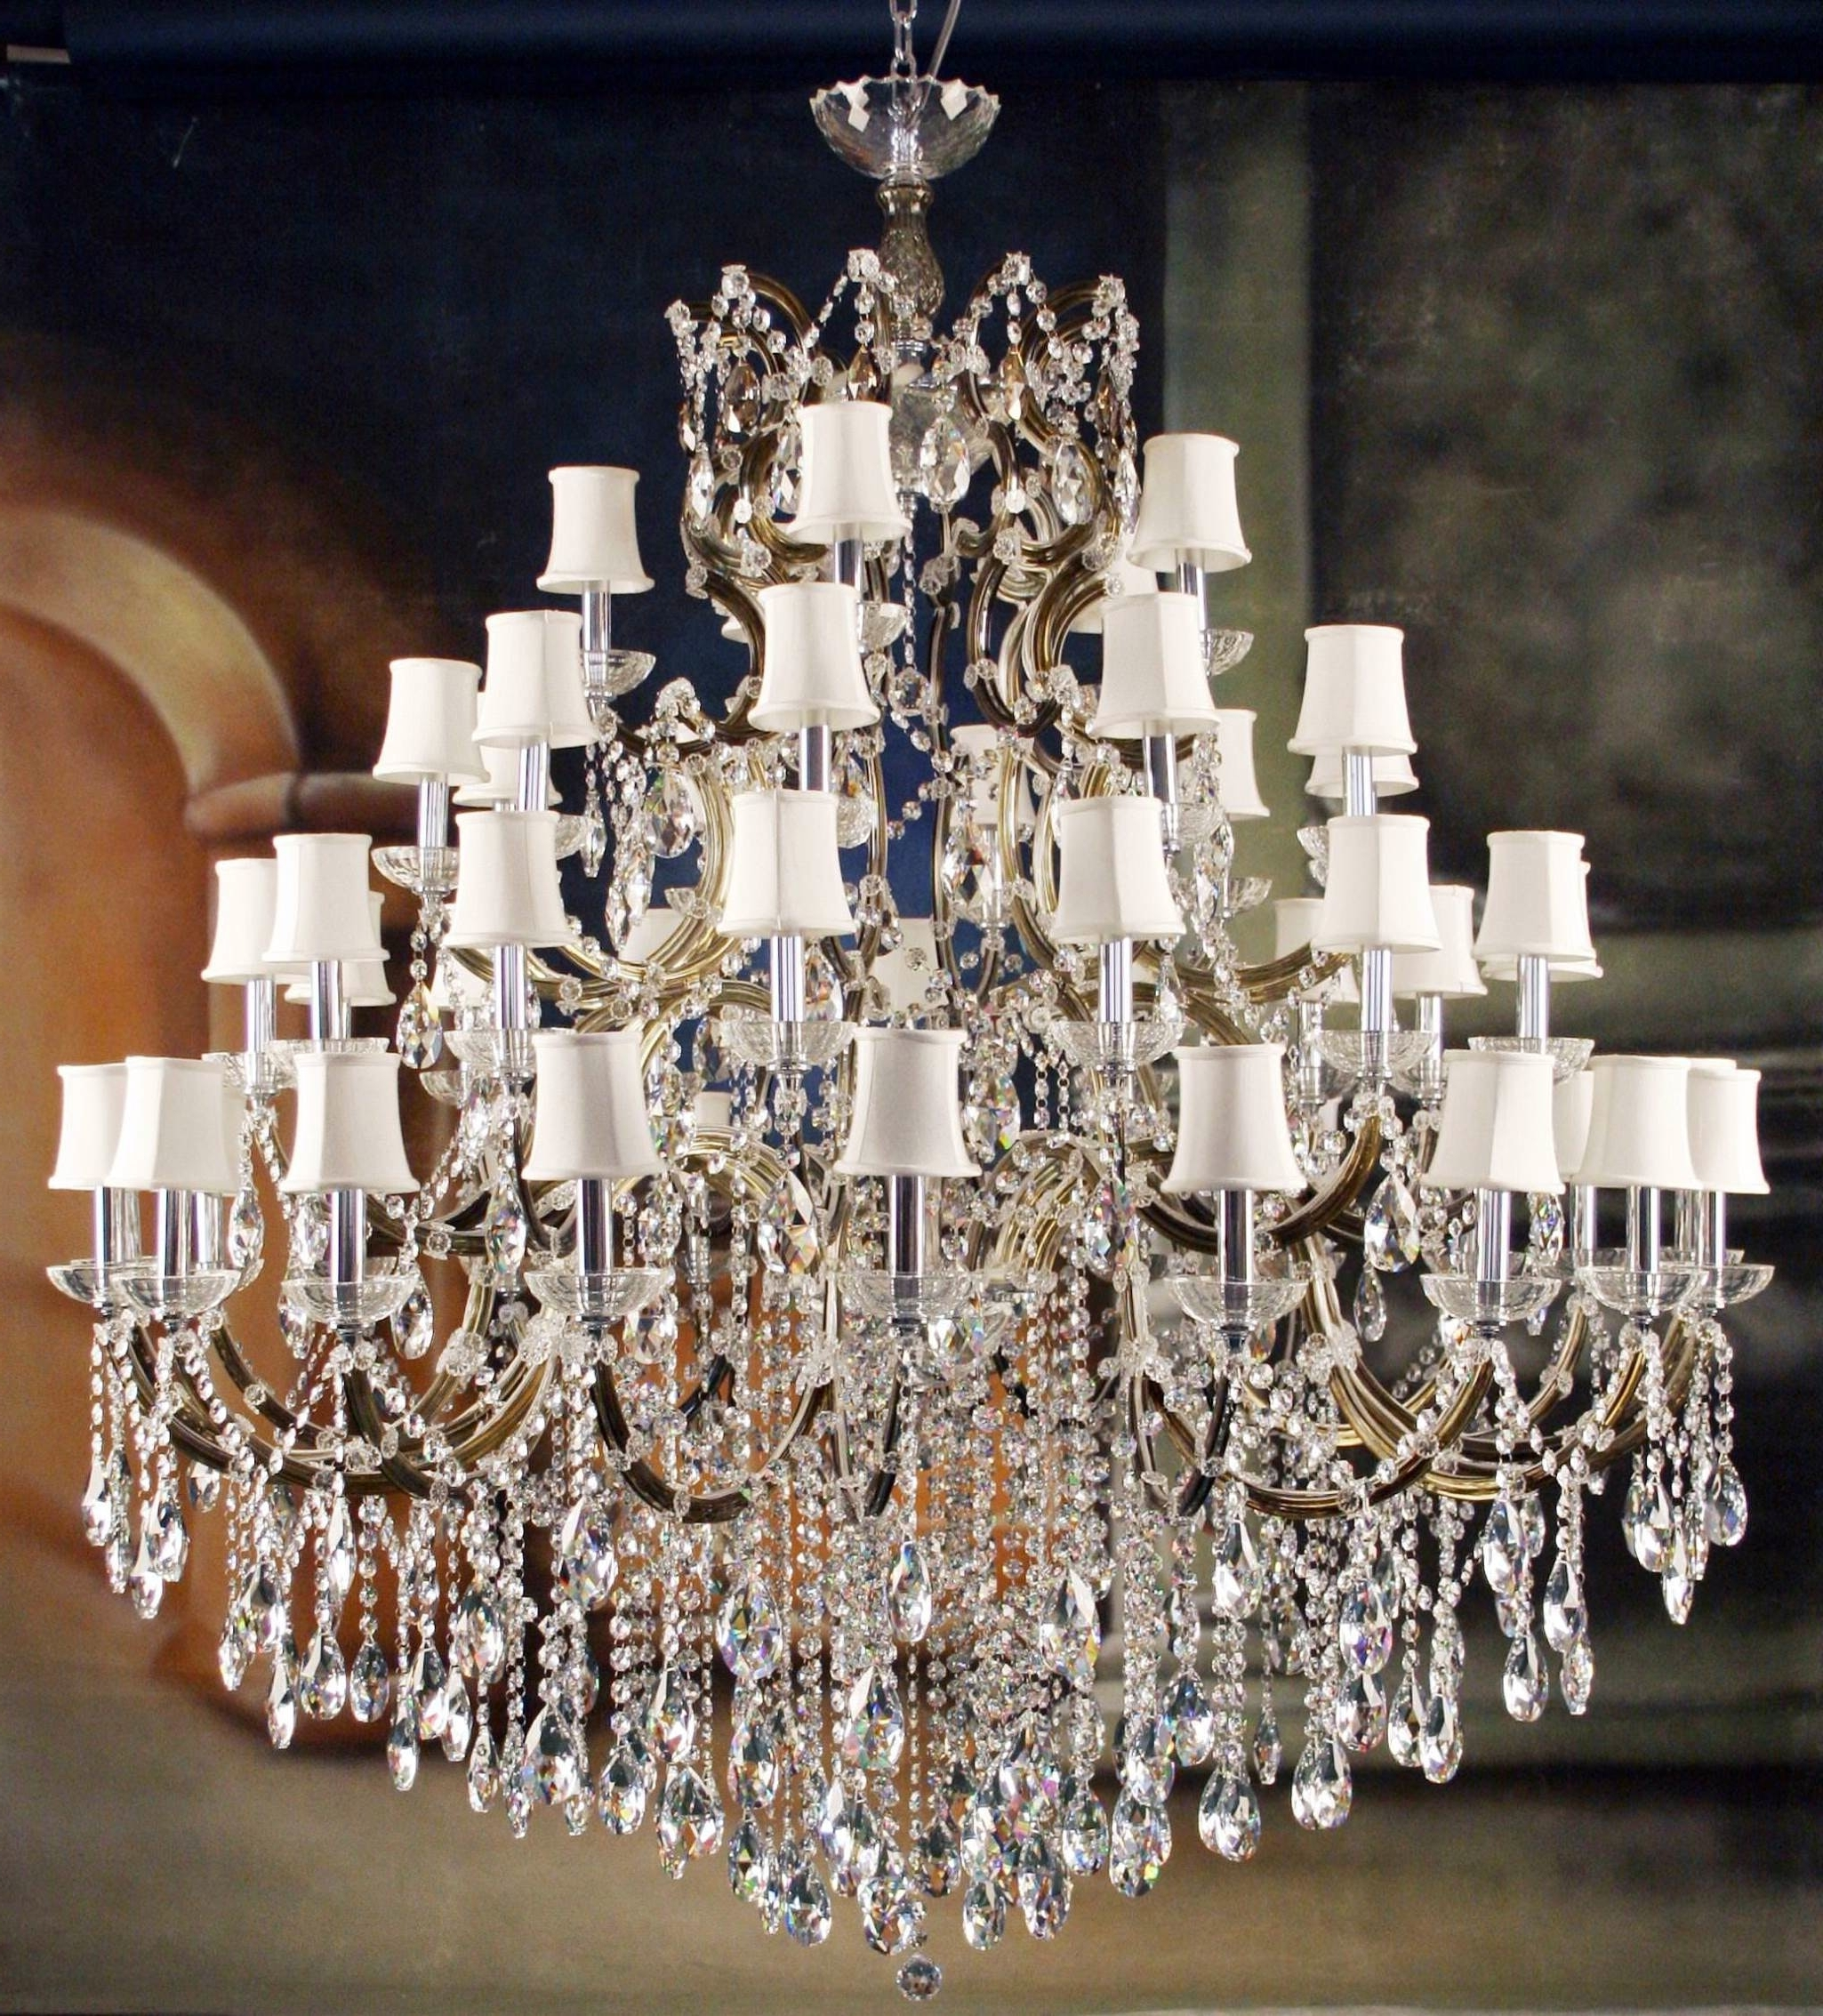 Fashionable Light : Fancy Chandelier And Matching Wall Lights For Your Christmas Throughout Bathroom Chandelier Wall Lights (View 16 of 20)